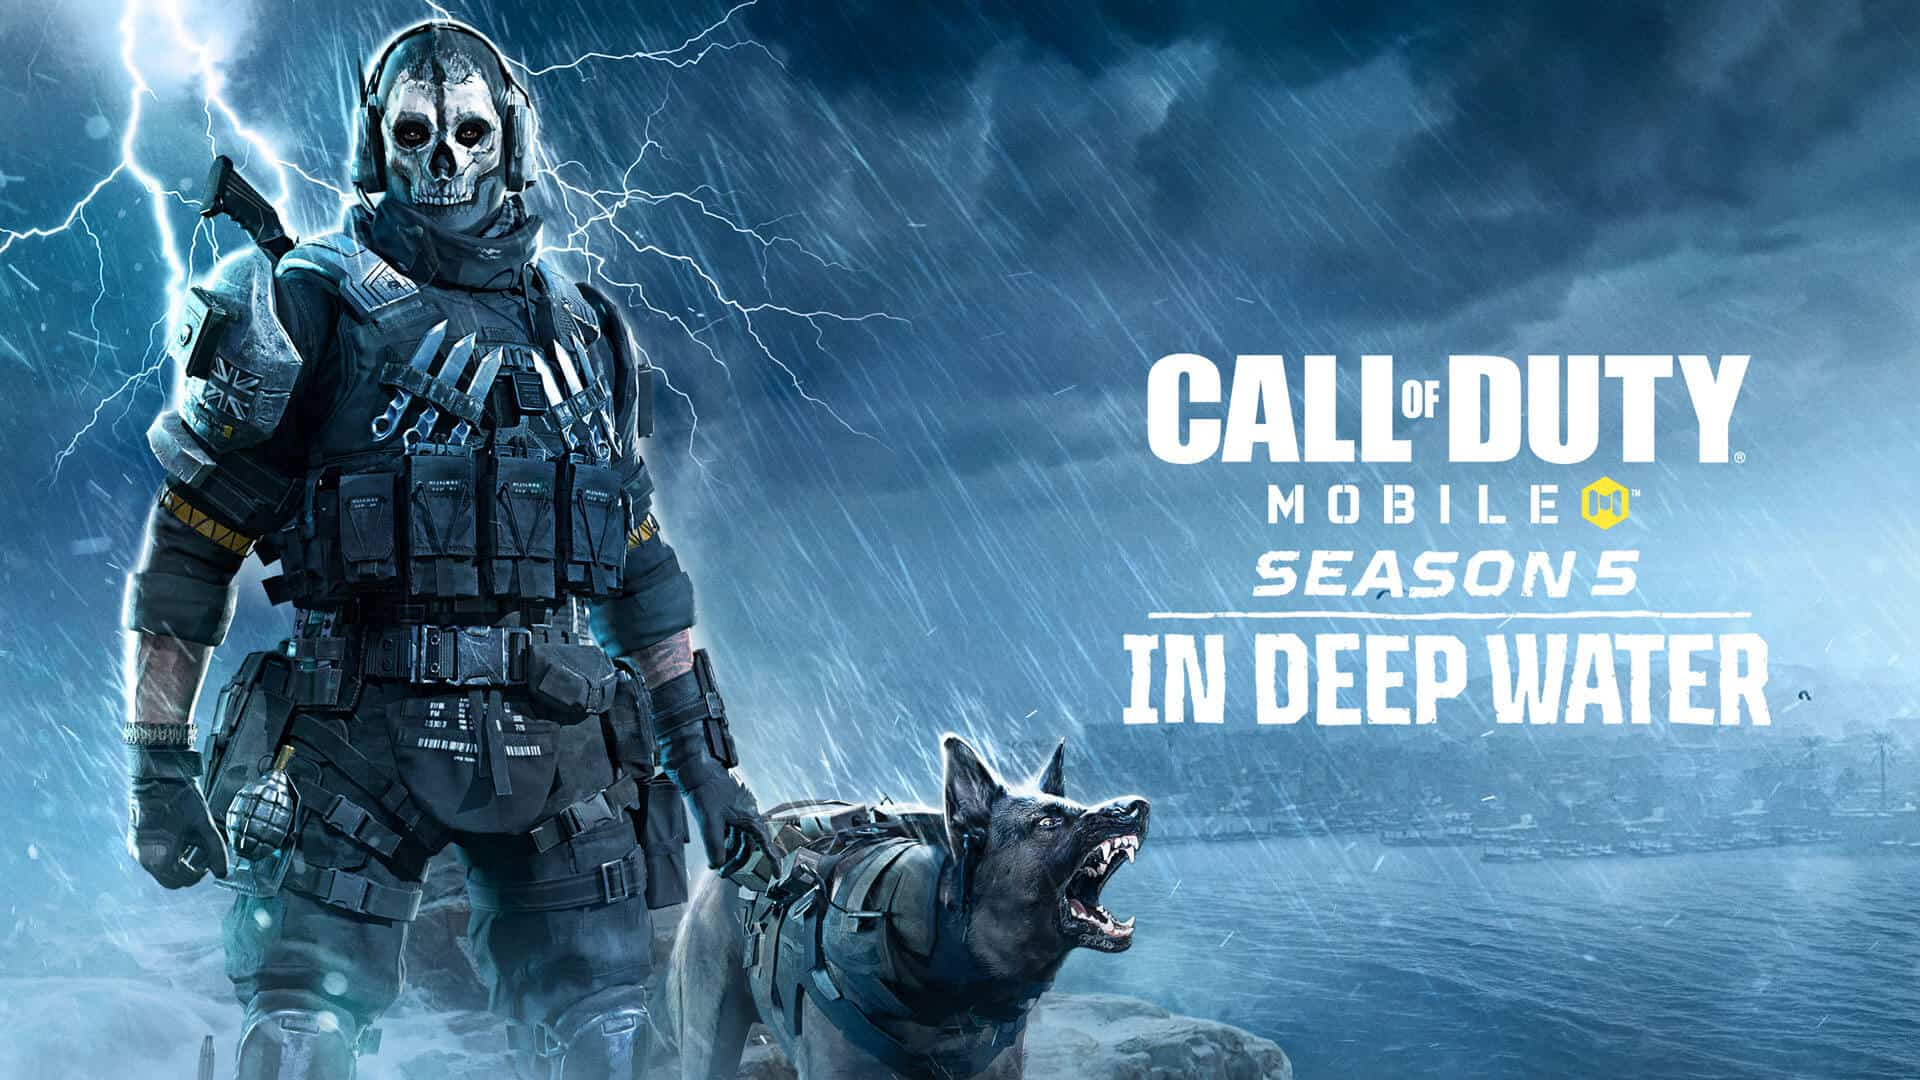 Epic Weapons in COD Mobile